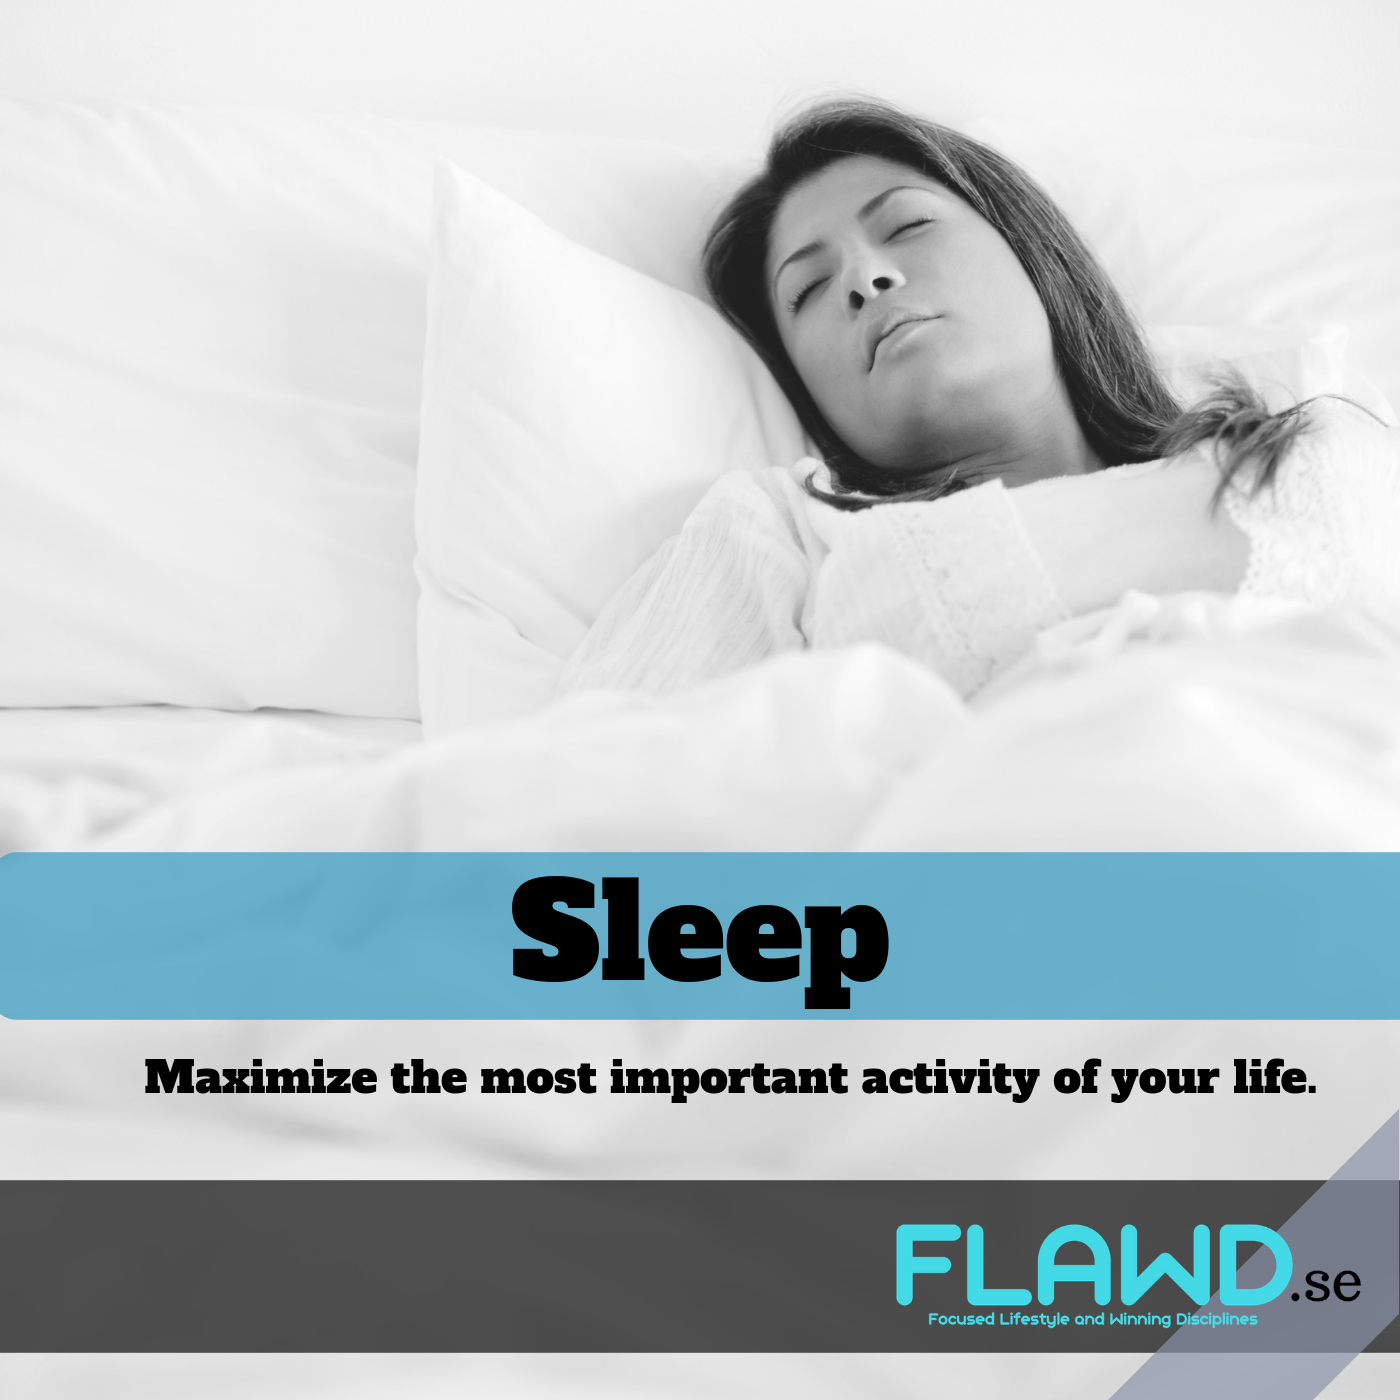 Sleep – Maximize the most important activity of your life.